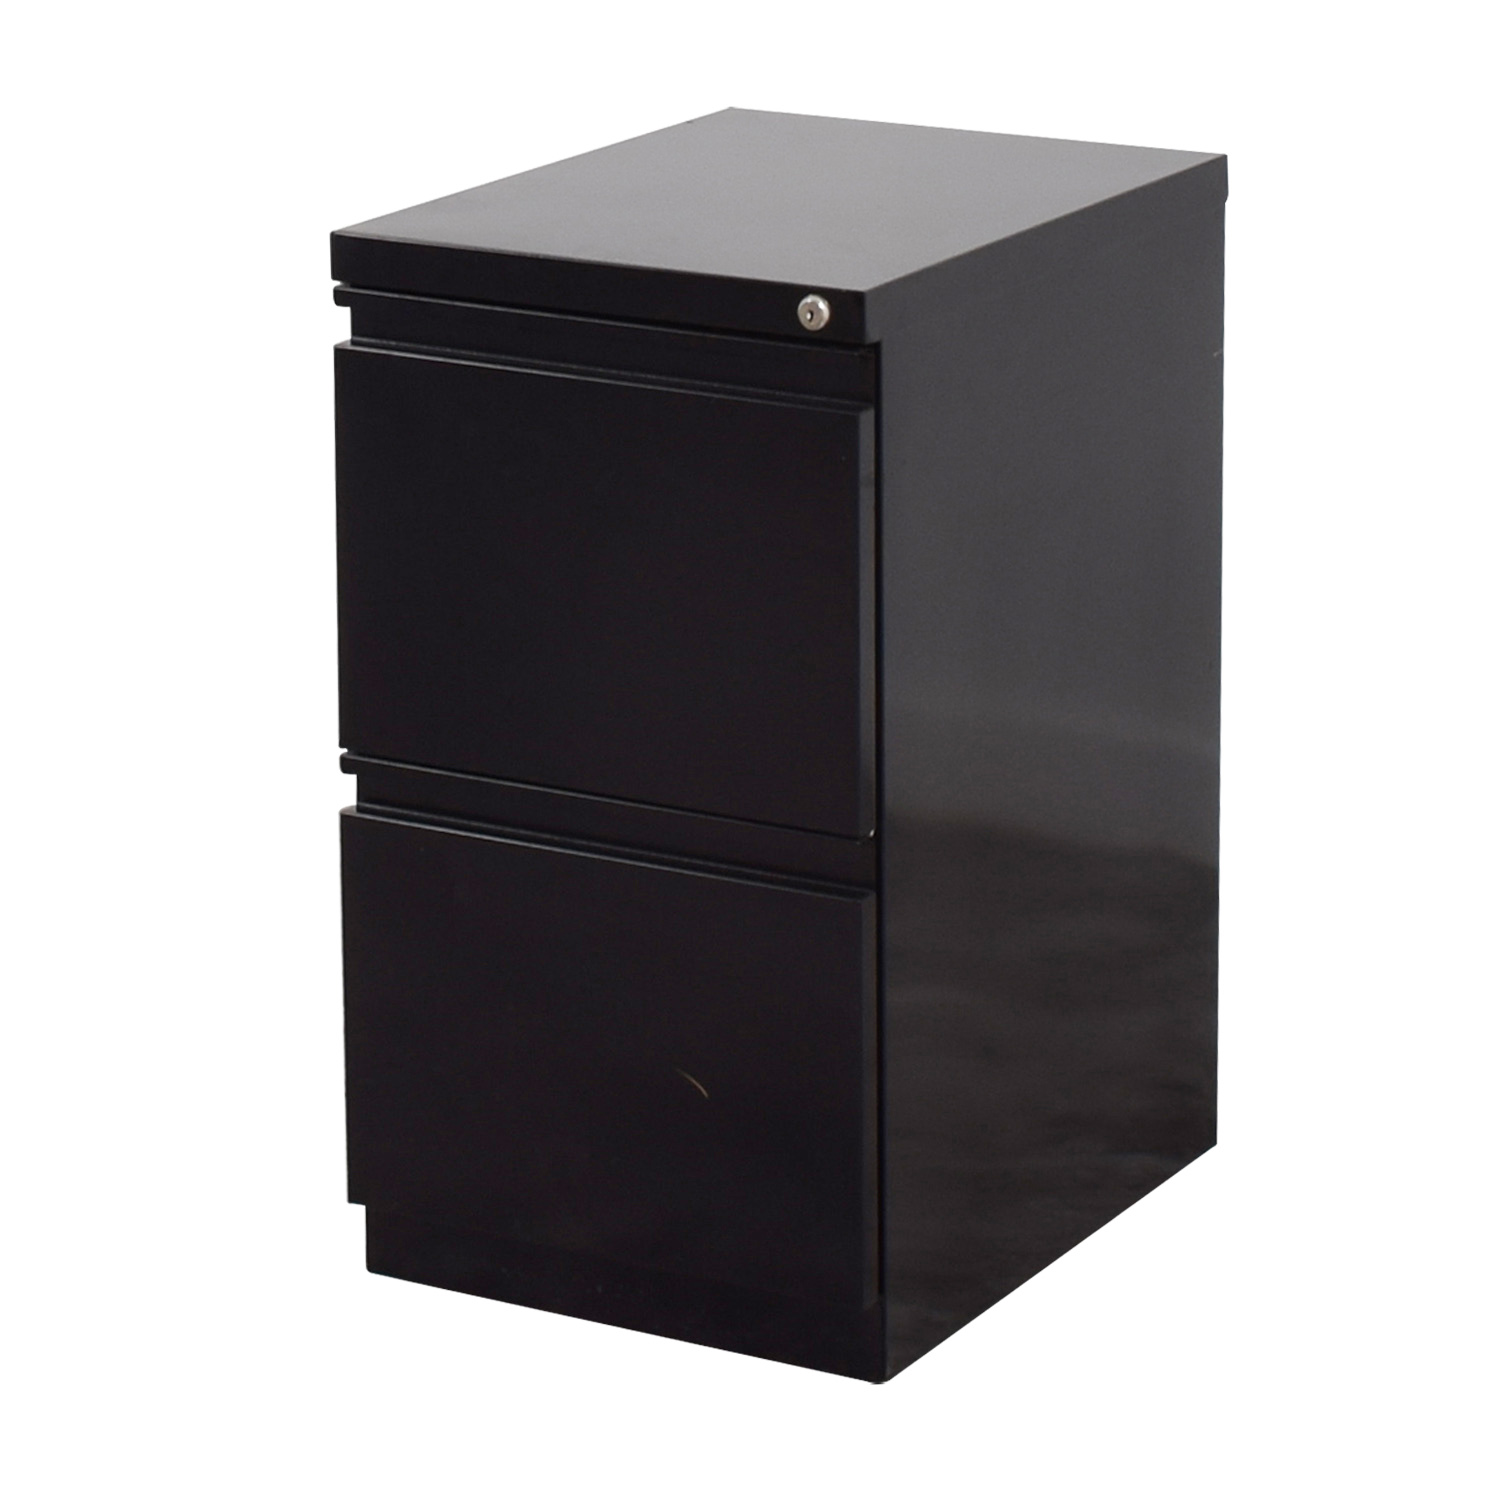 80 Off Staples Staples 2 Drawer Mobile Pedestal File Cabinet Storage